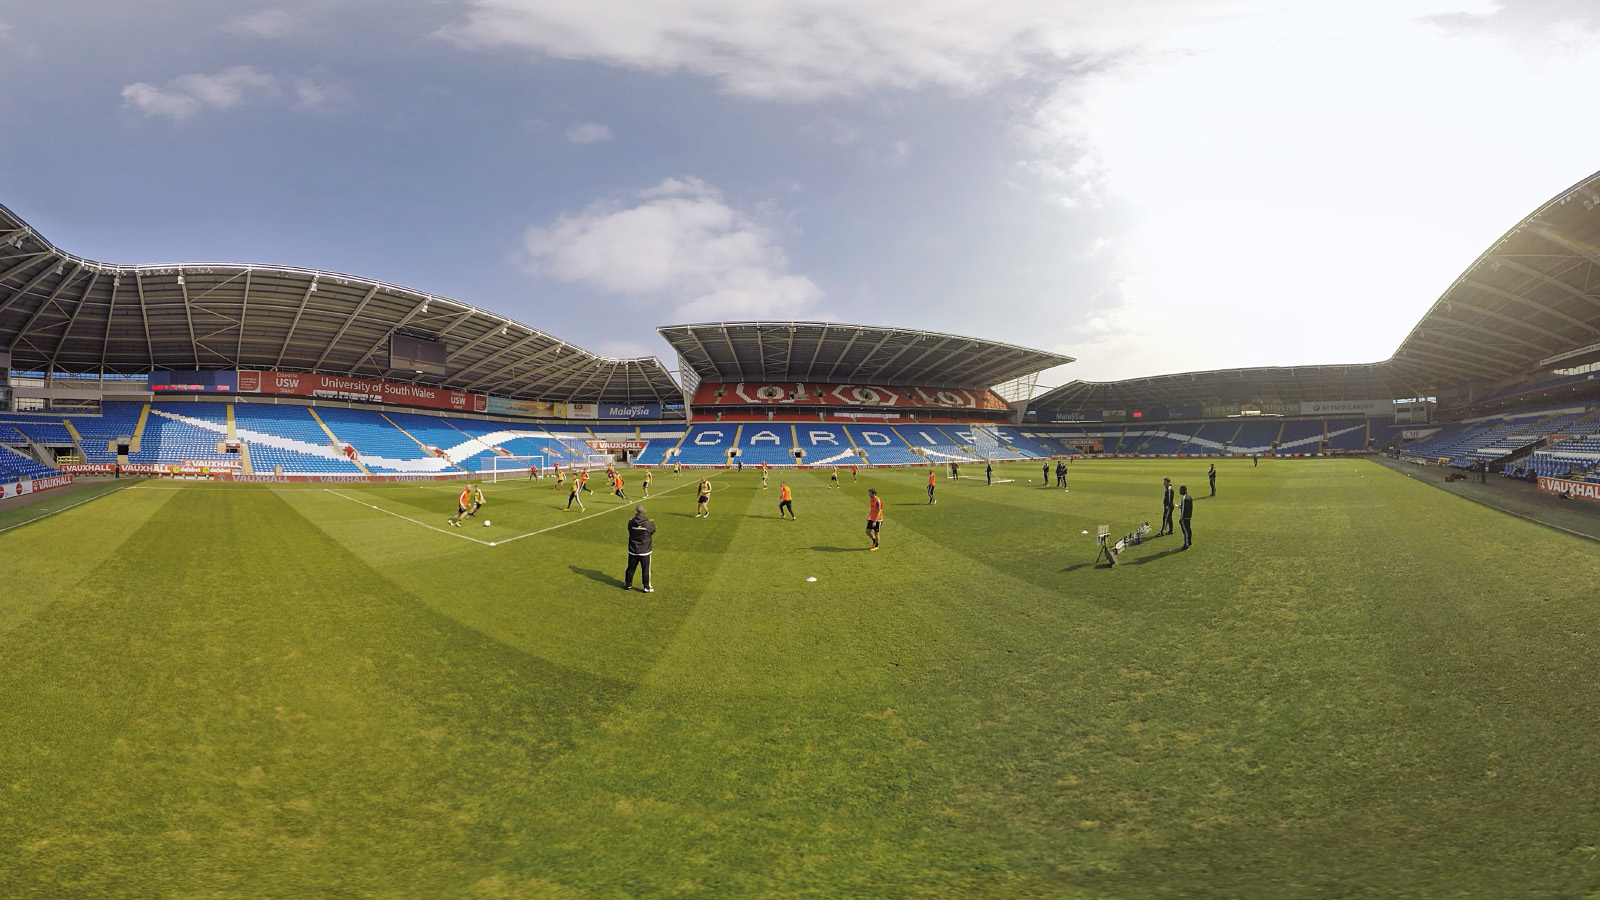 360 Video capture of the Wales team at Cardiff City Stadium